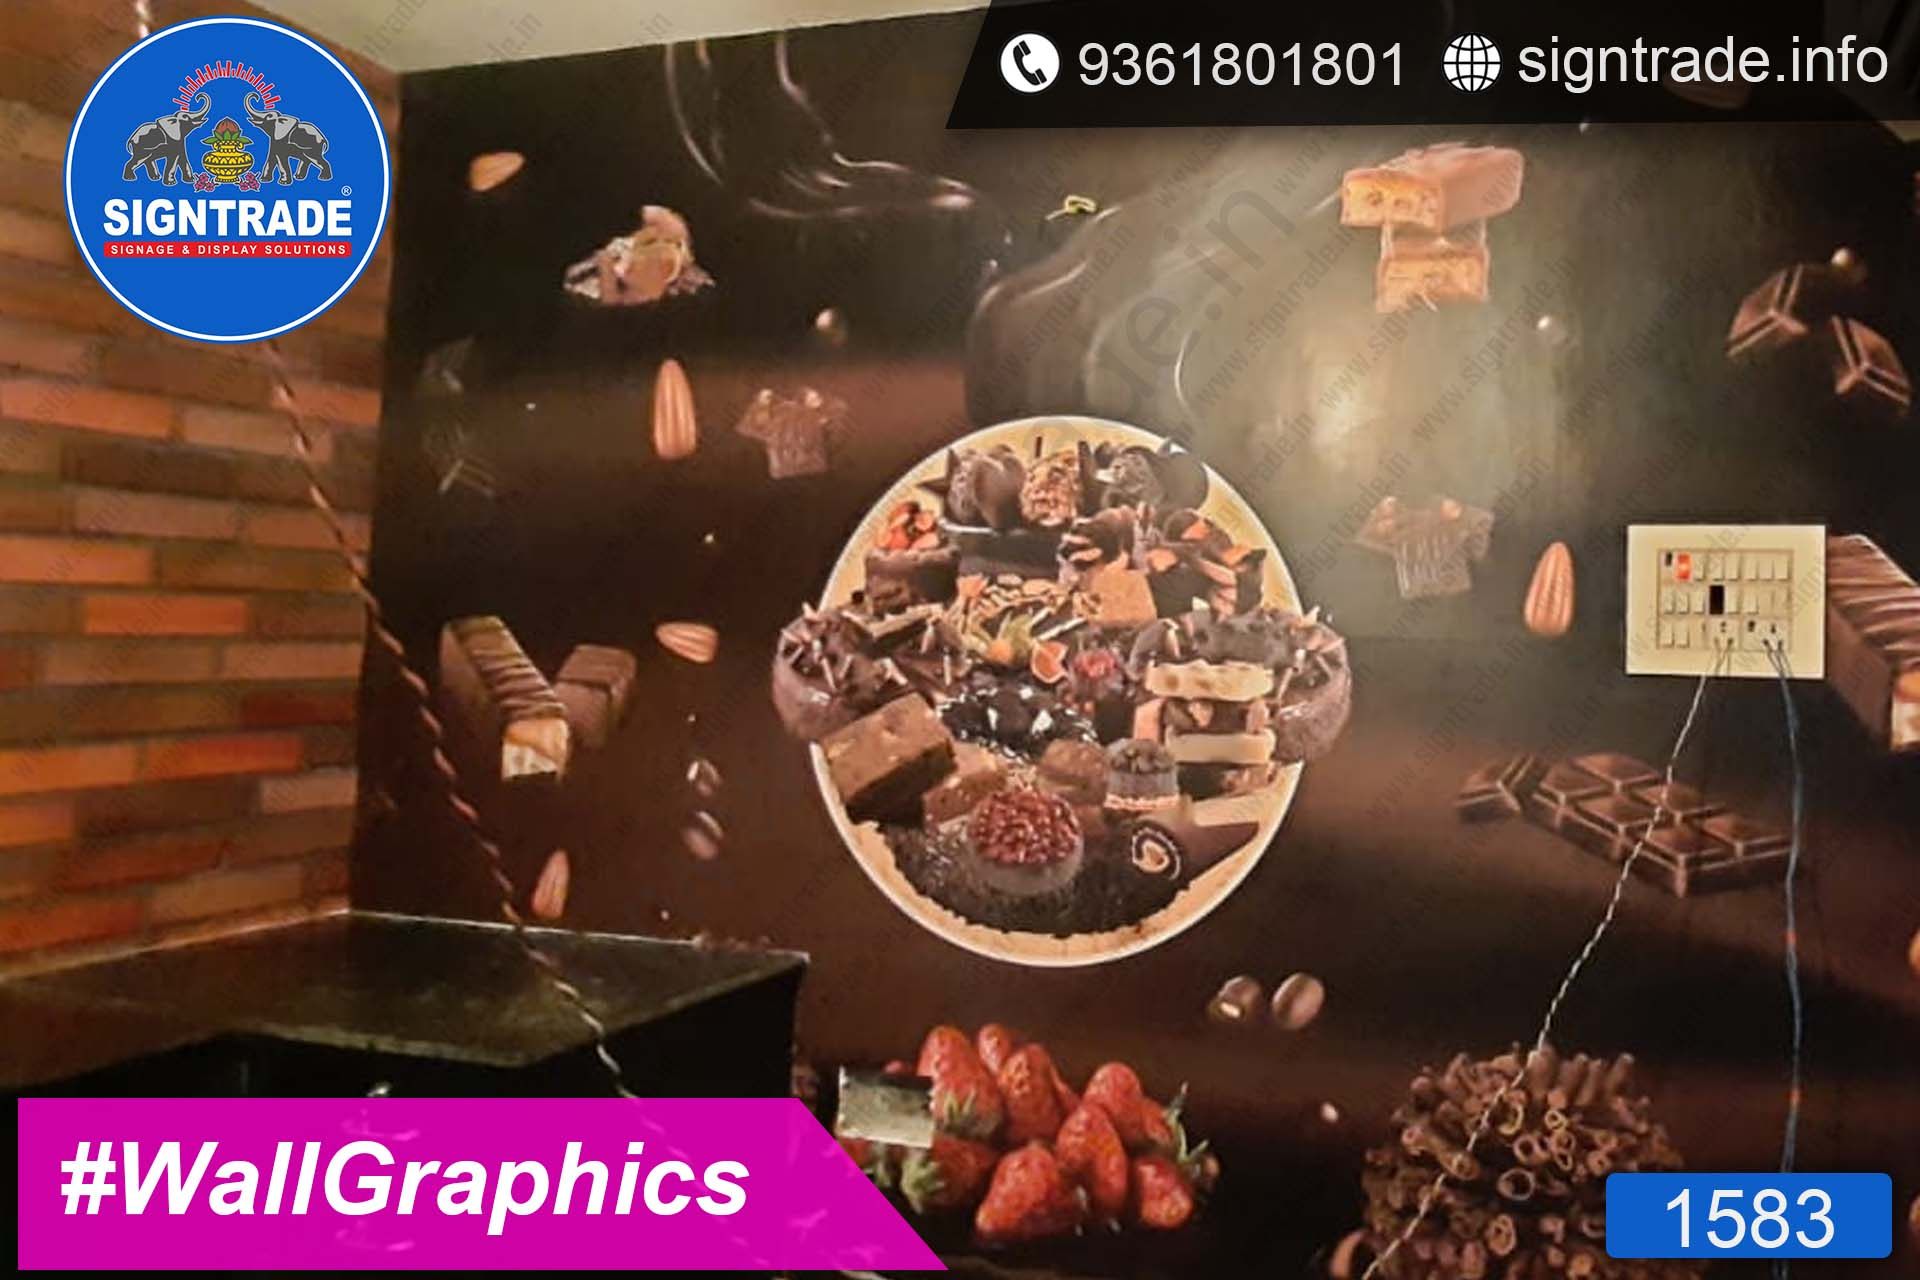 Cakes and Berrys, Santhosapuram, Chennai - SIGNTRADE - Wall Graphics, Vinyl Graphics, Vinyl Printing Service in Chennai